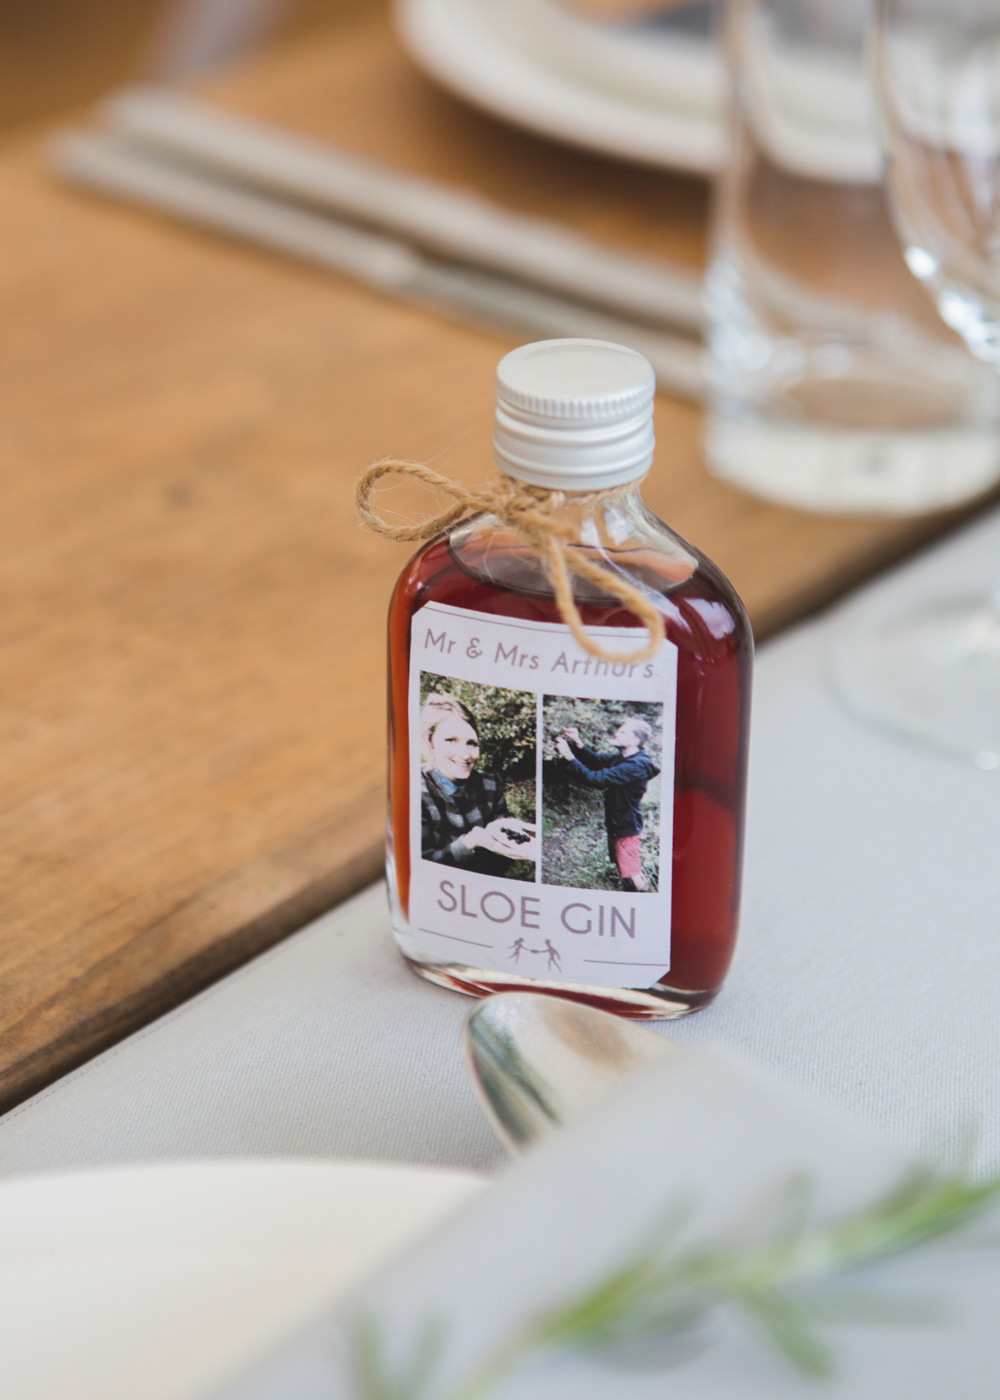 Sloe Gin Favours Airbnb Wedding Pickavance Weddings